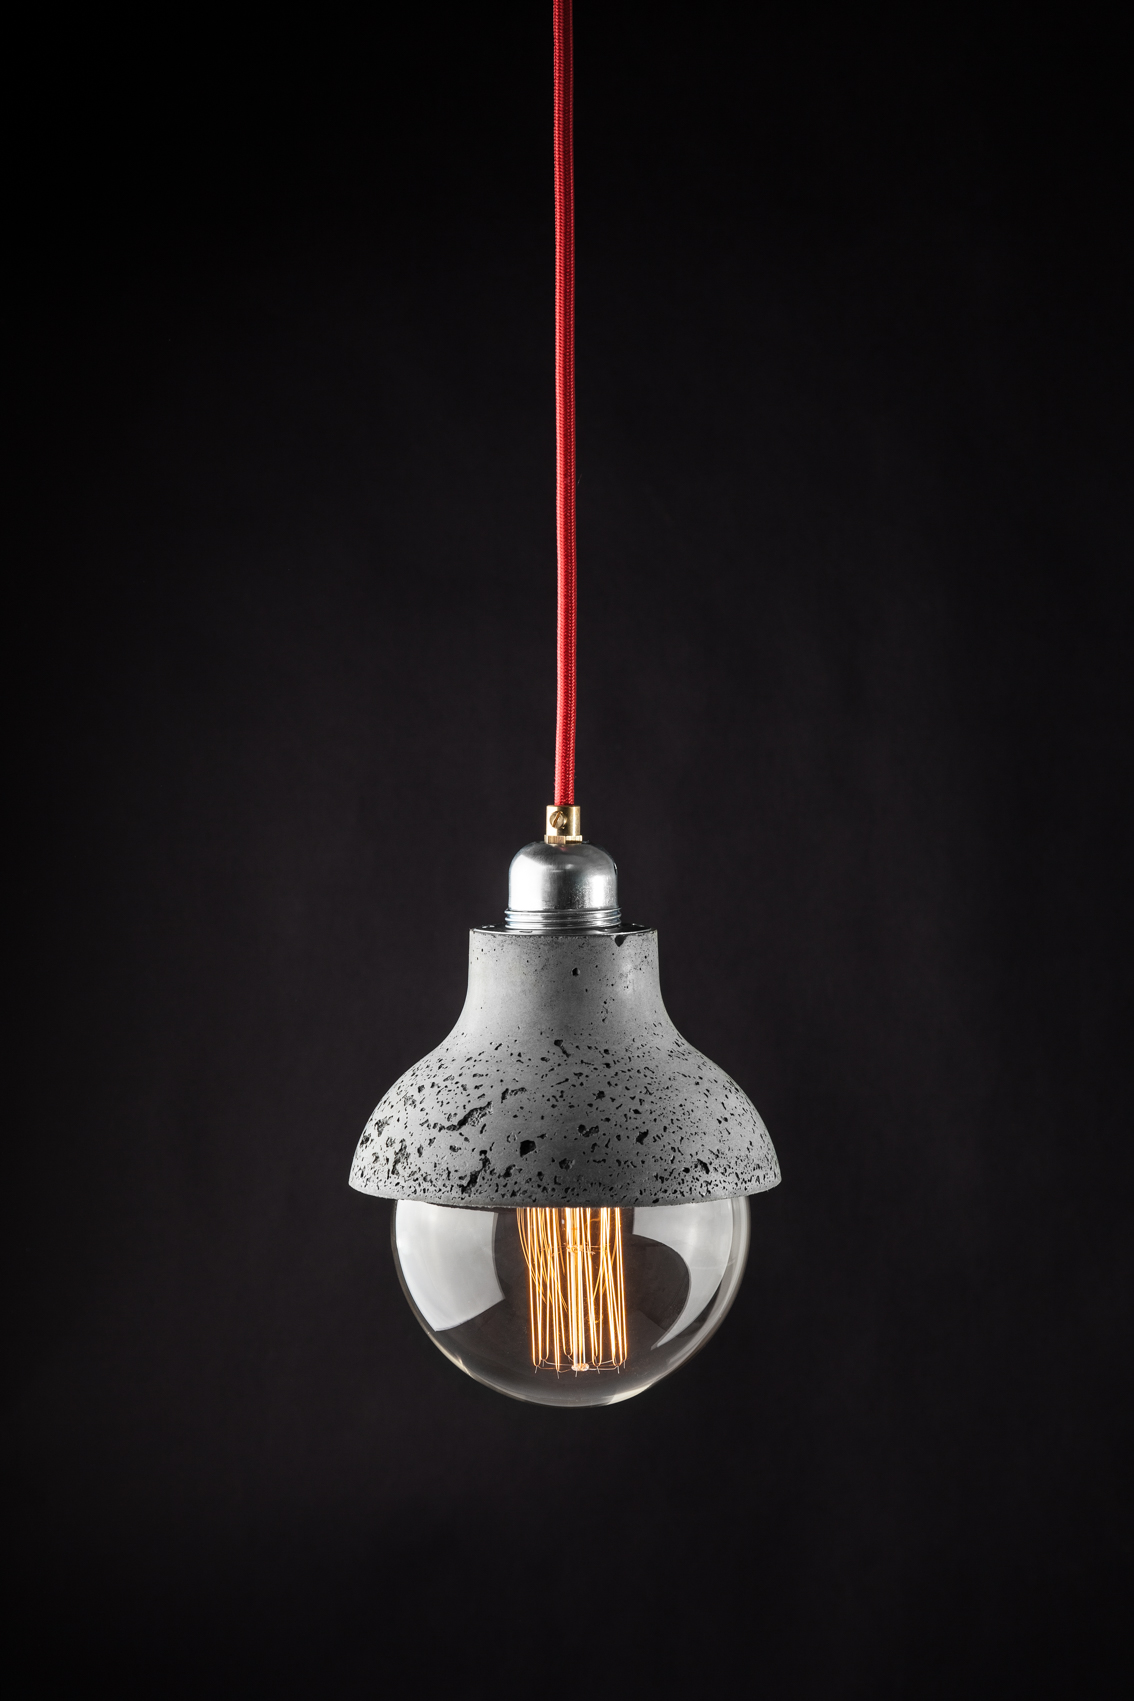 concrete lamp made by vaspi studio - Yoav vaspi yanai